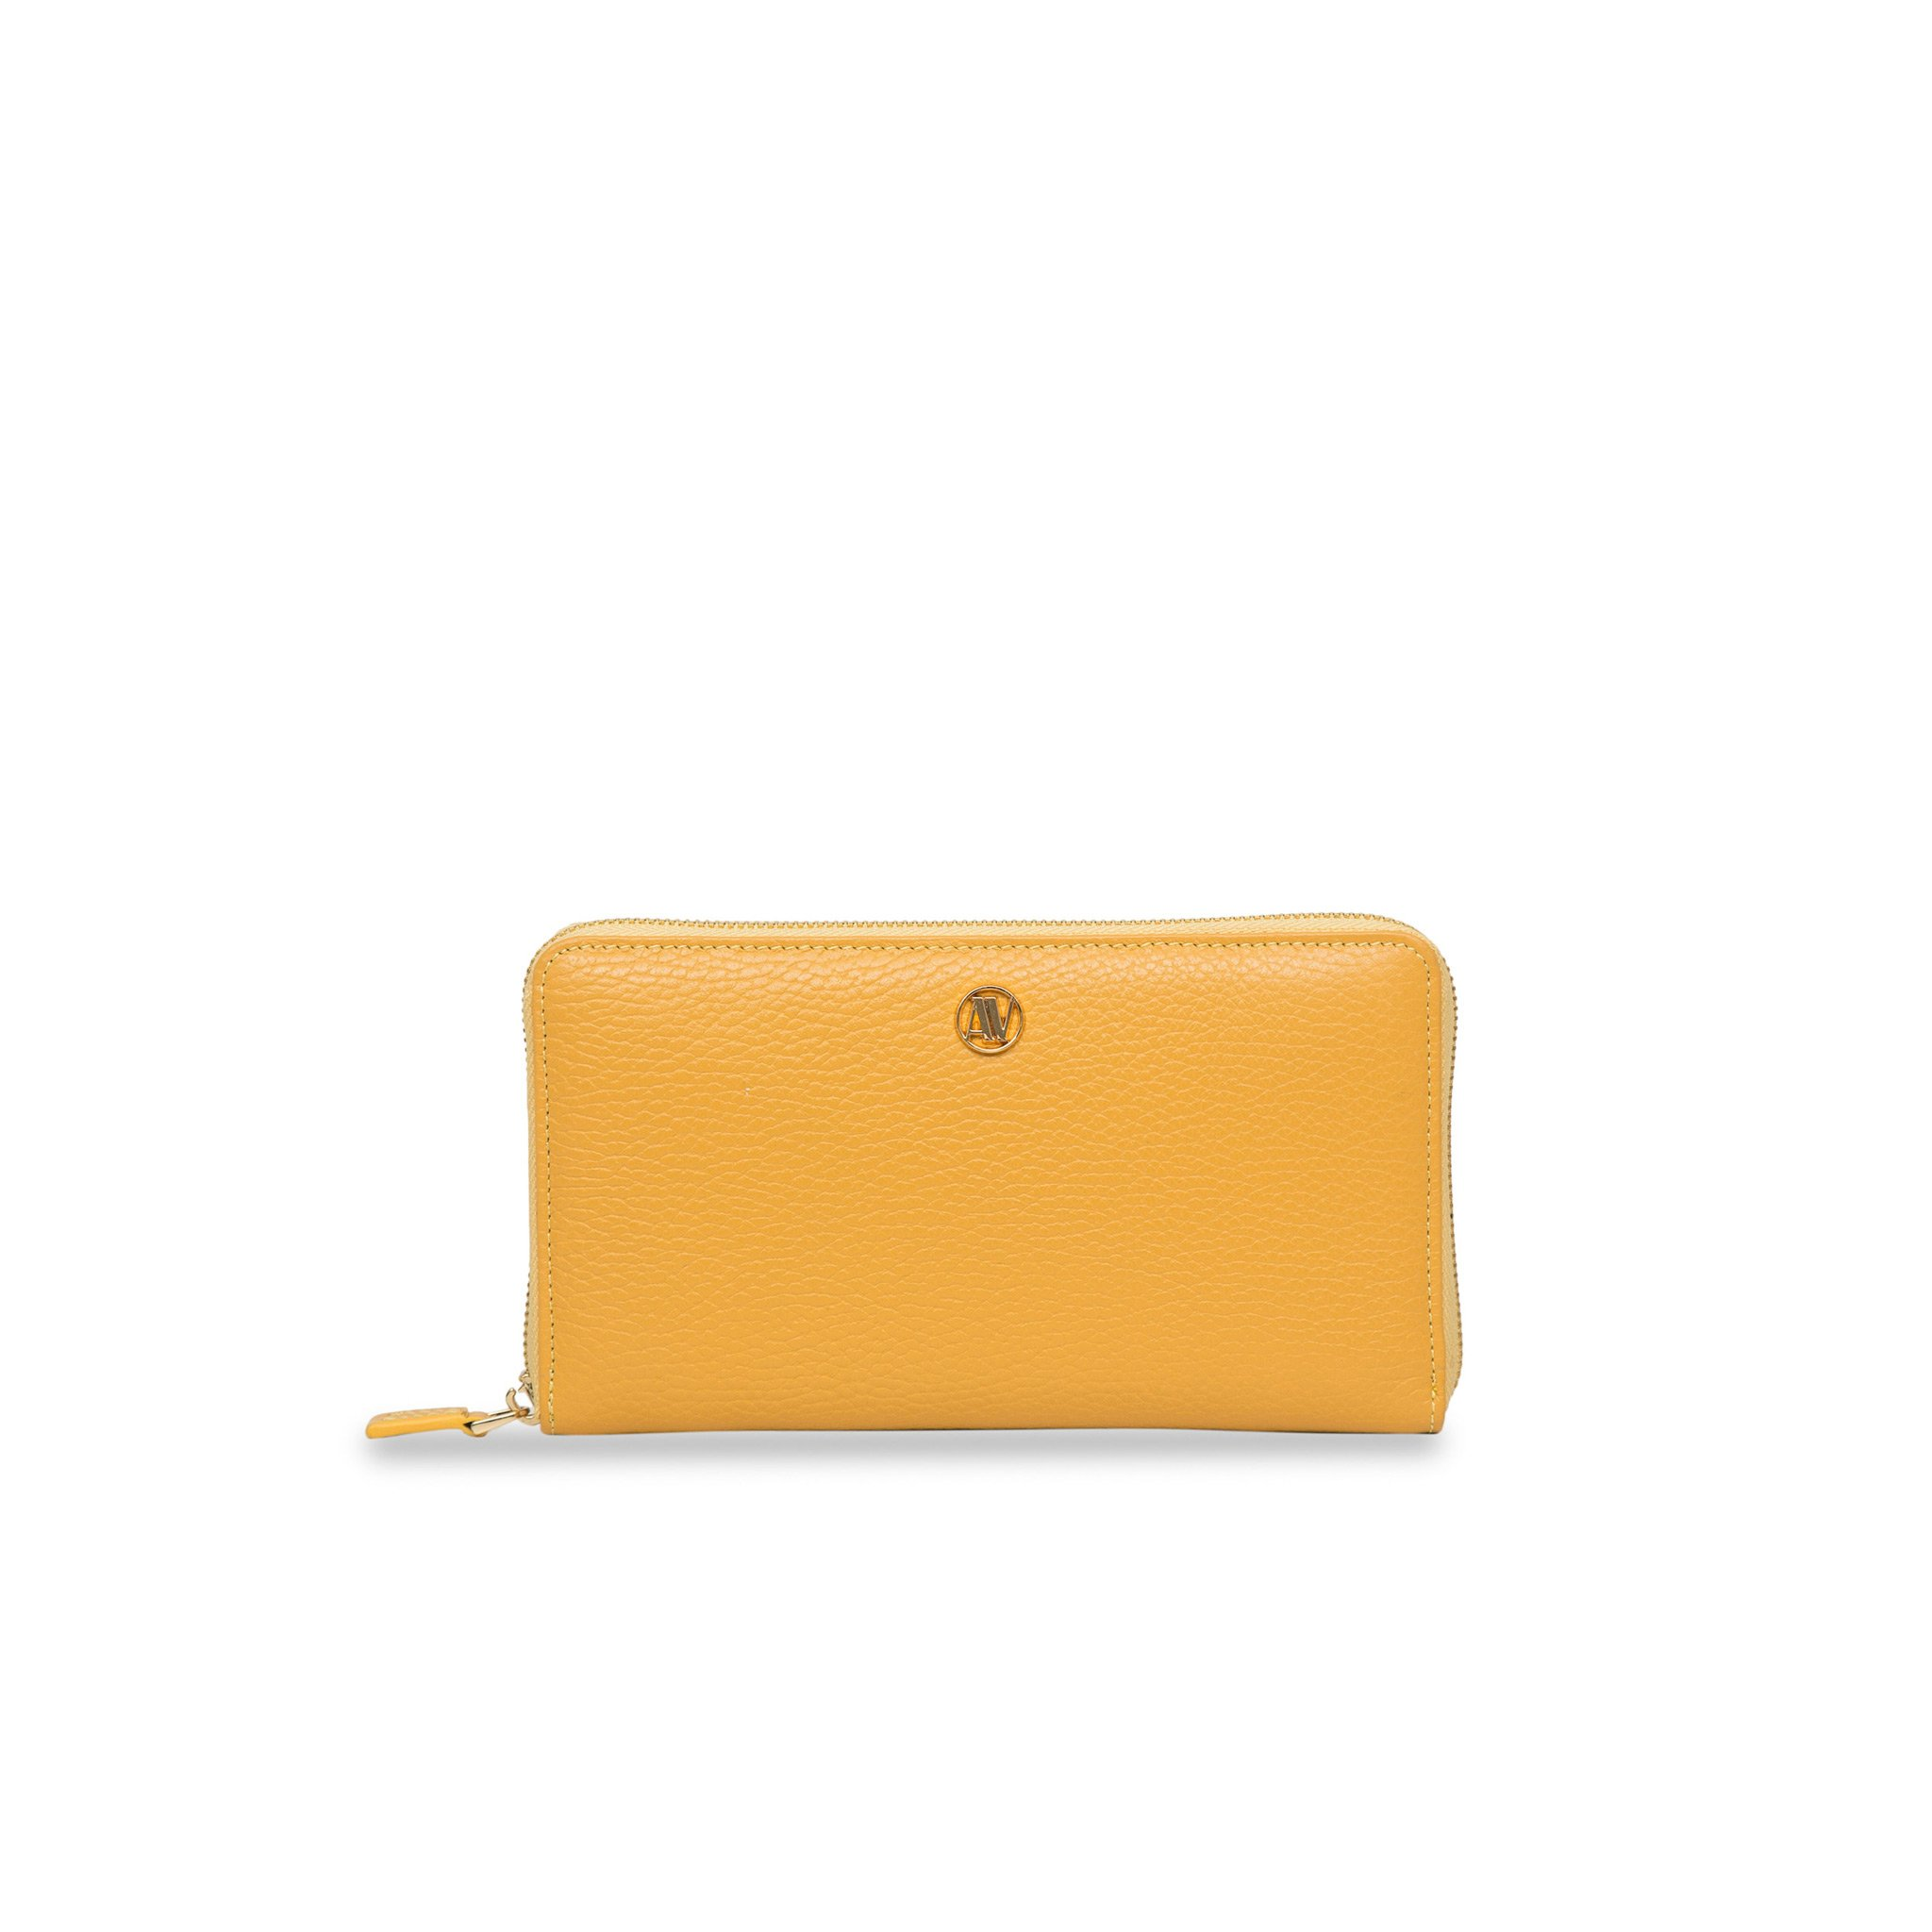 Rimini Zip Around leather Wallet - Ochre Yellow